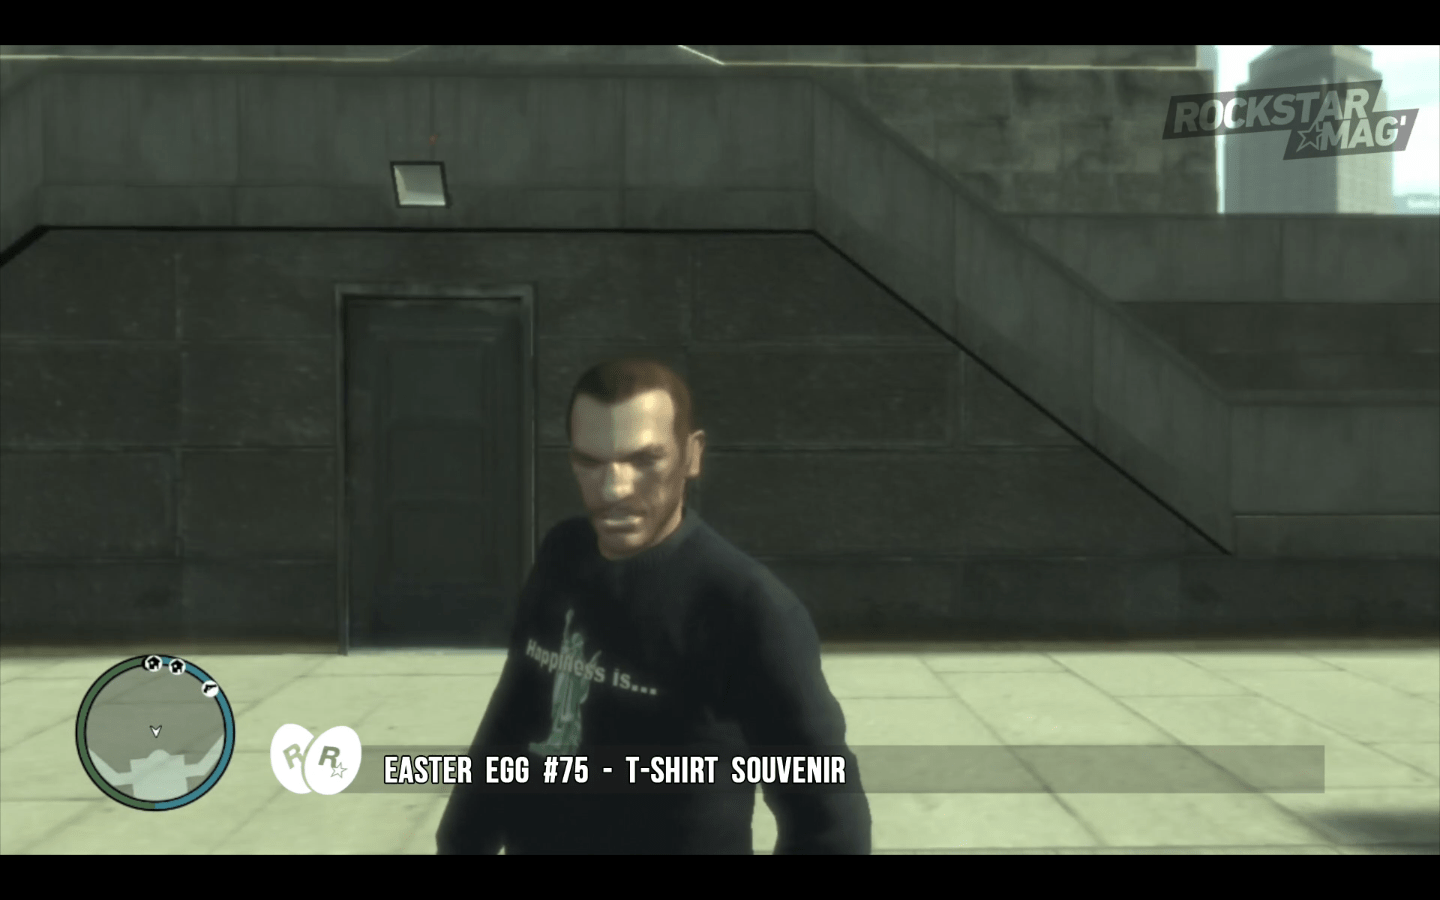 GTA IV - Easter Egg 75